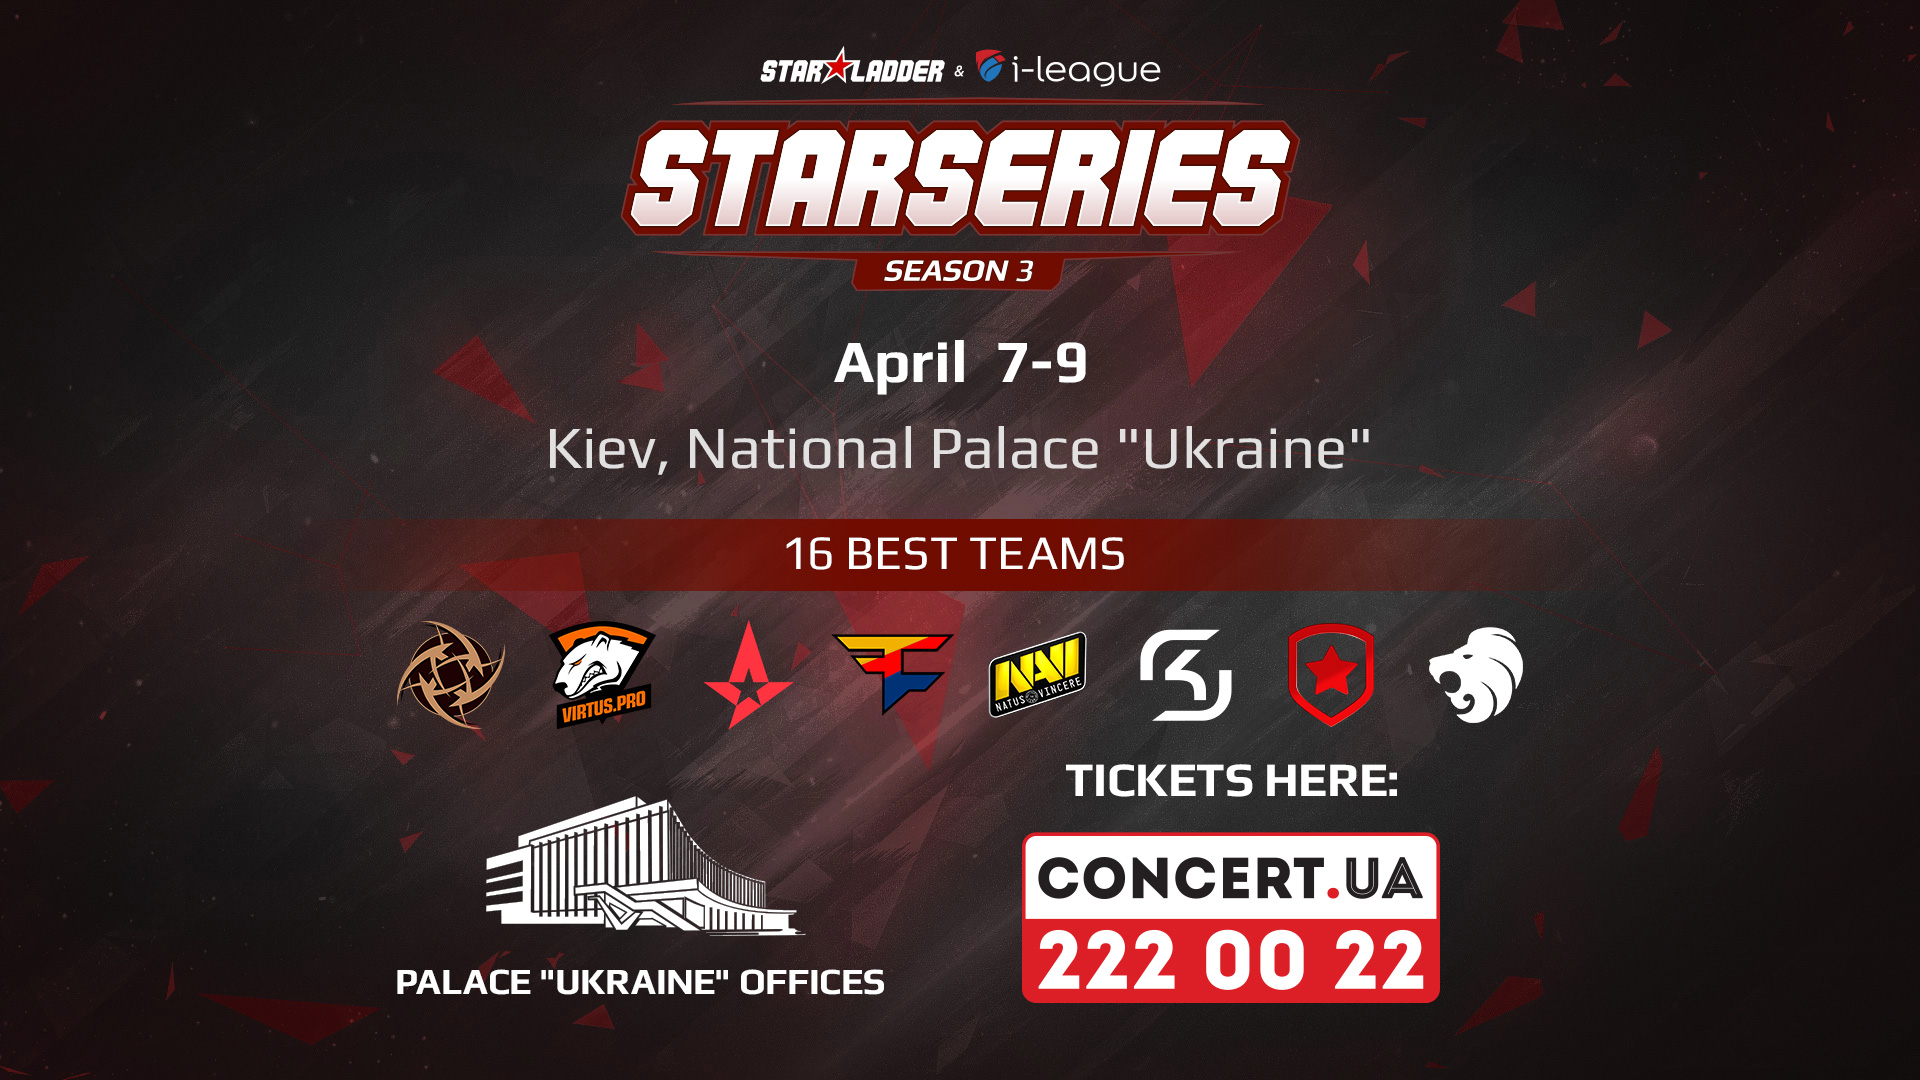 SL i-League CS:GO StarSeries S3 Tickets